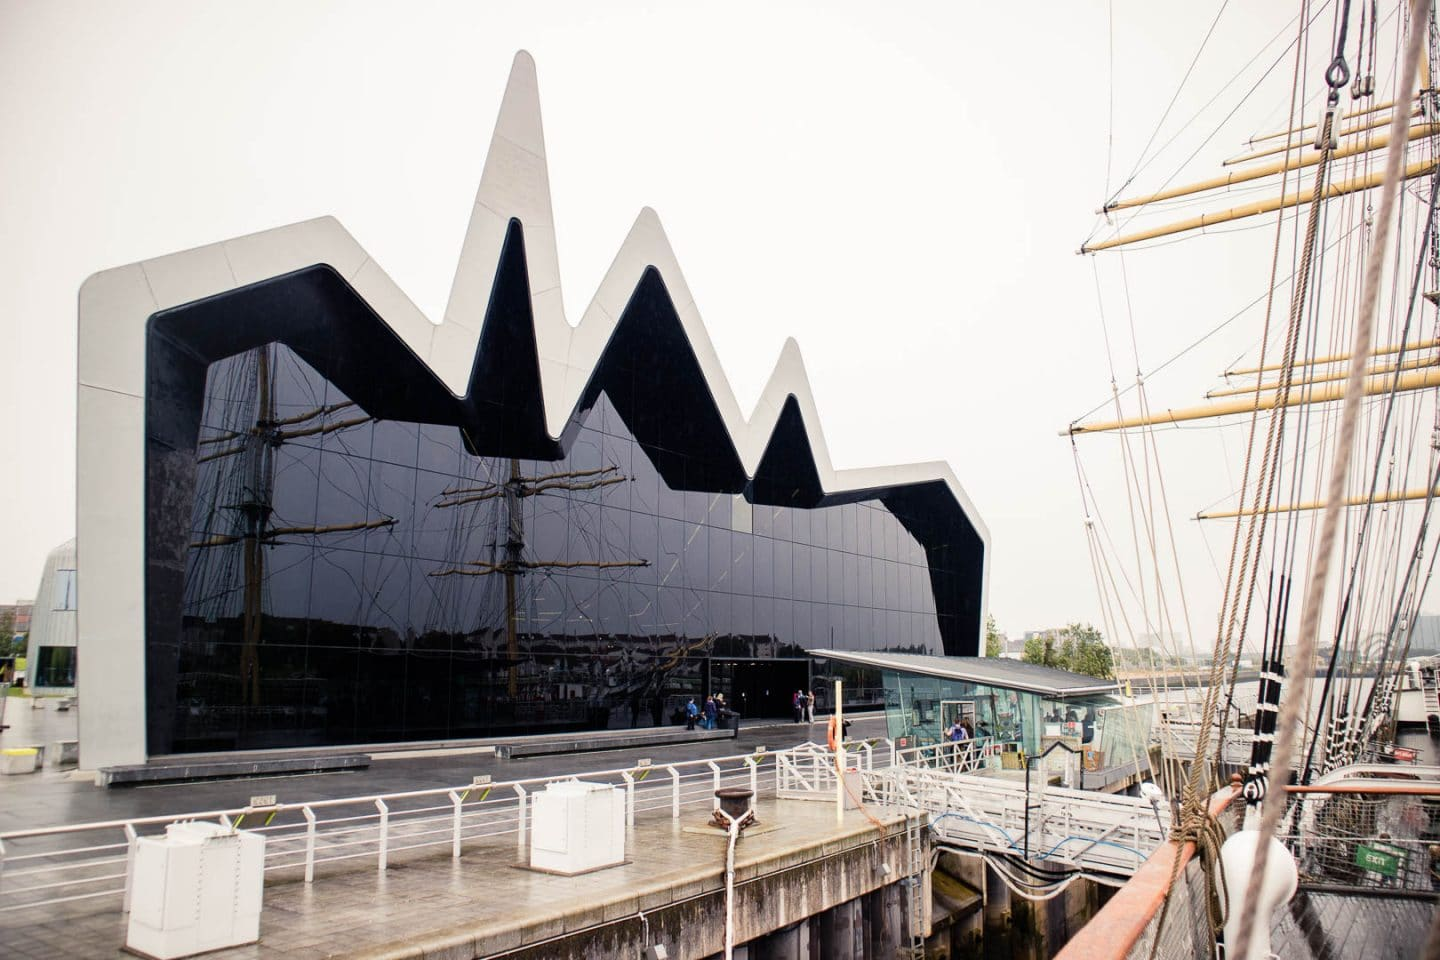 Riverside Museum and Tall Ship - Photo by Kathi Kamleitner